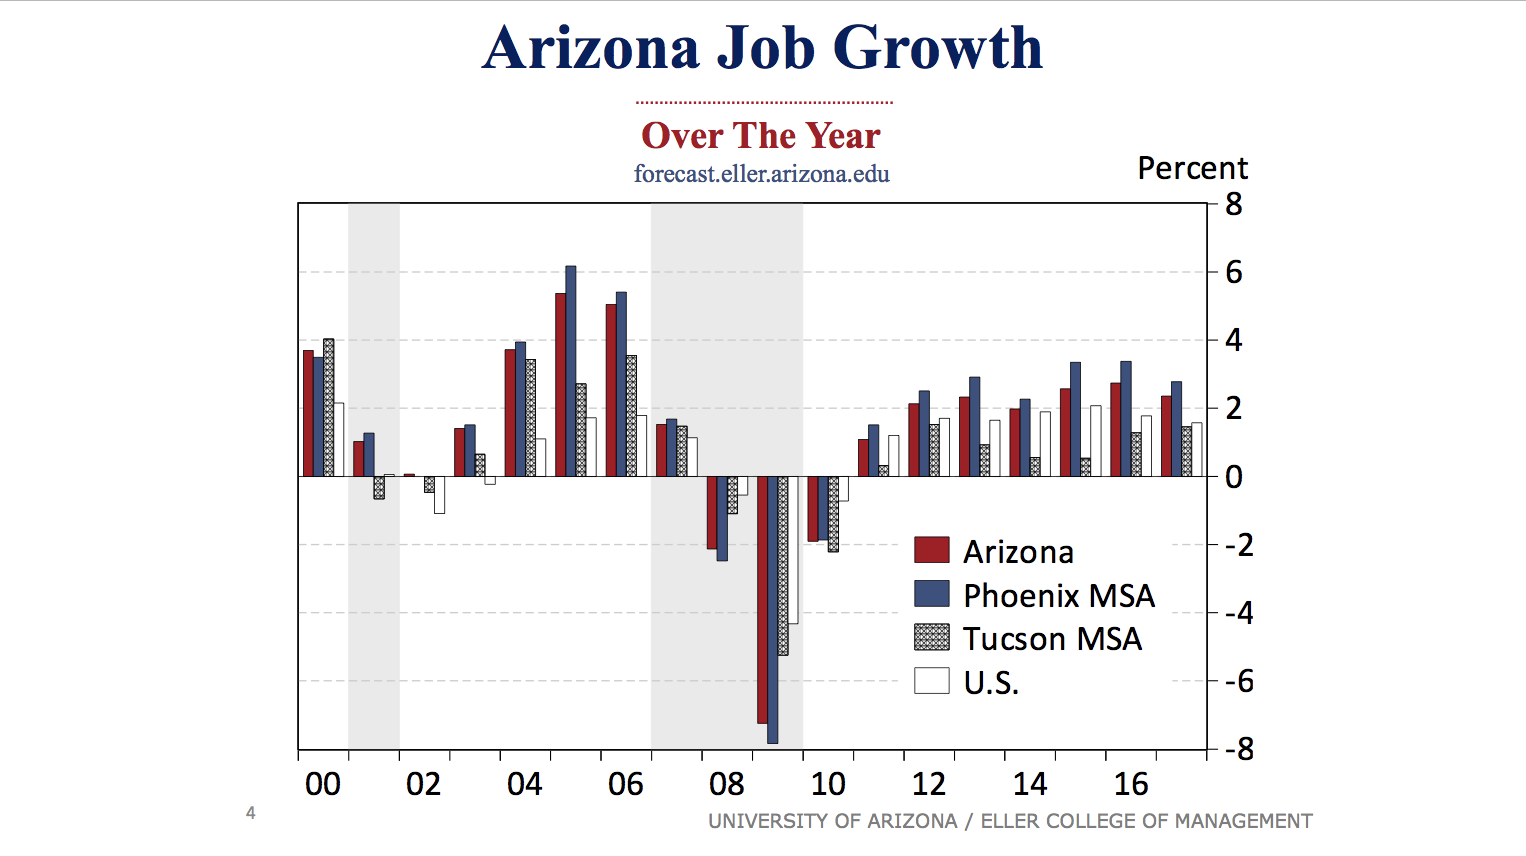 Arizona Job growth